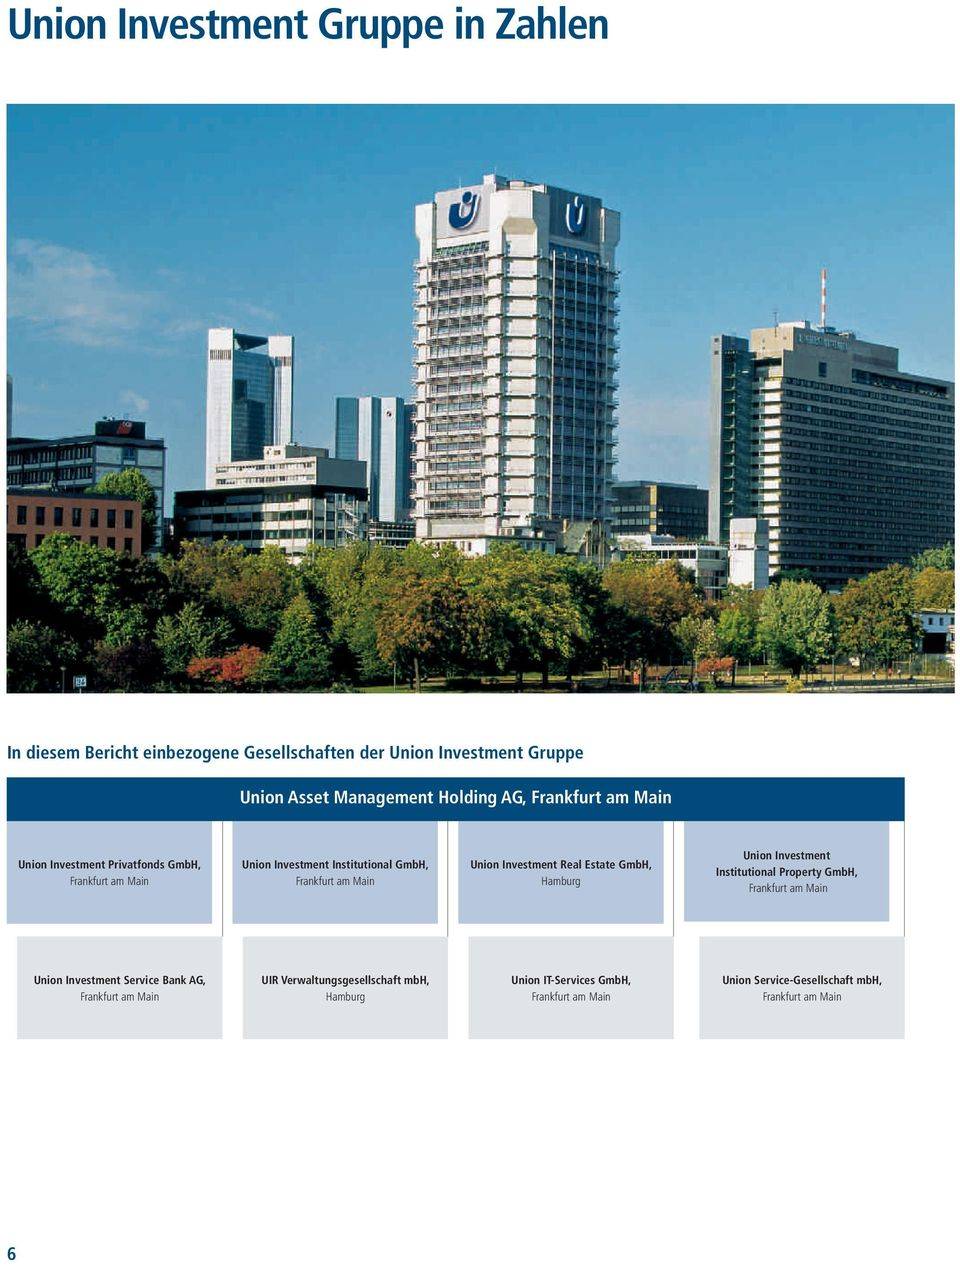 Investment Real Estate GmbH, Hamburg Union Investment Institutional Property GmbH, Frankfurt am Main Union Investment Service Bank AG,